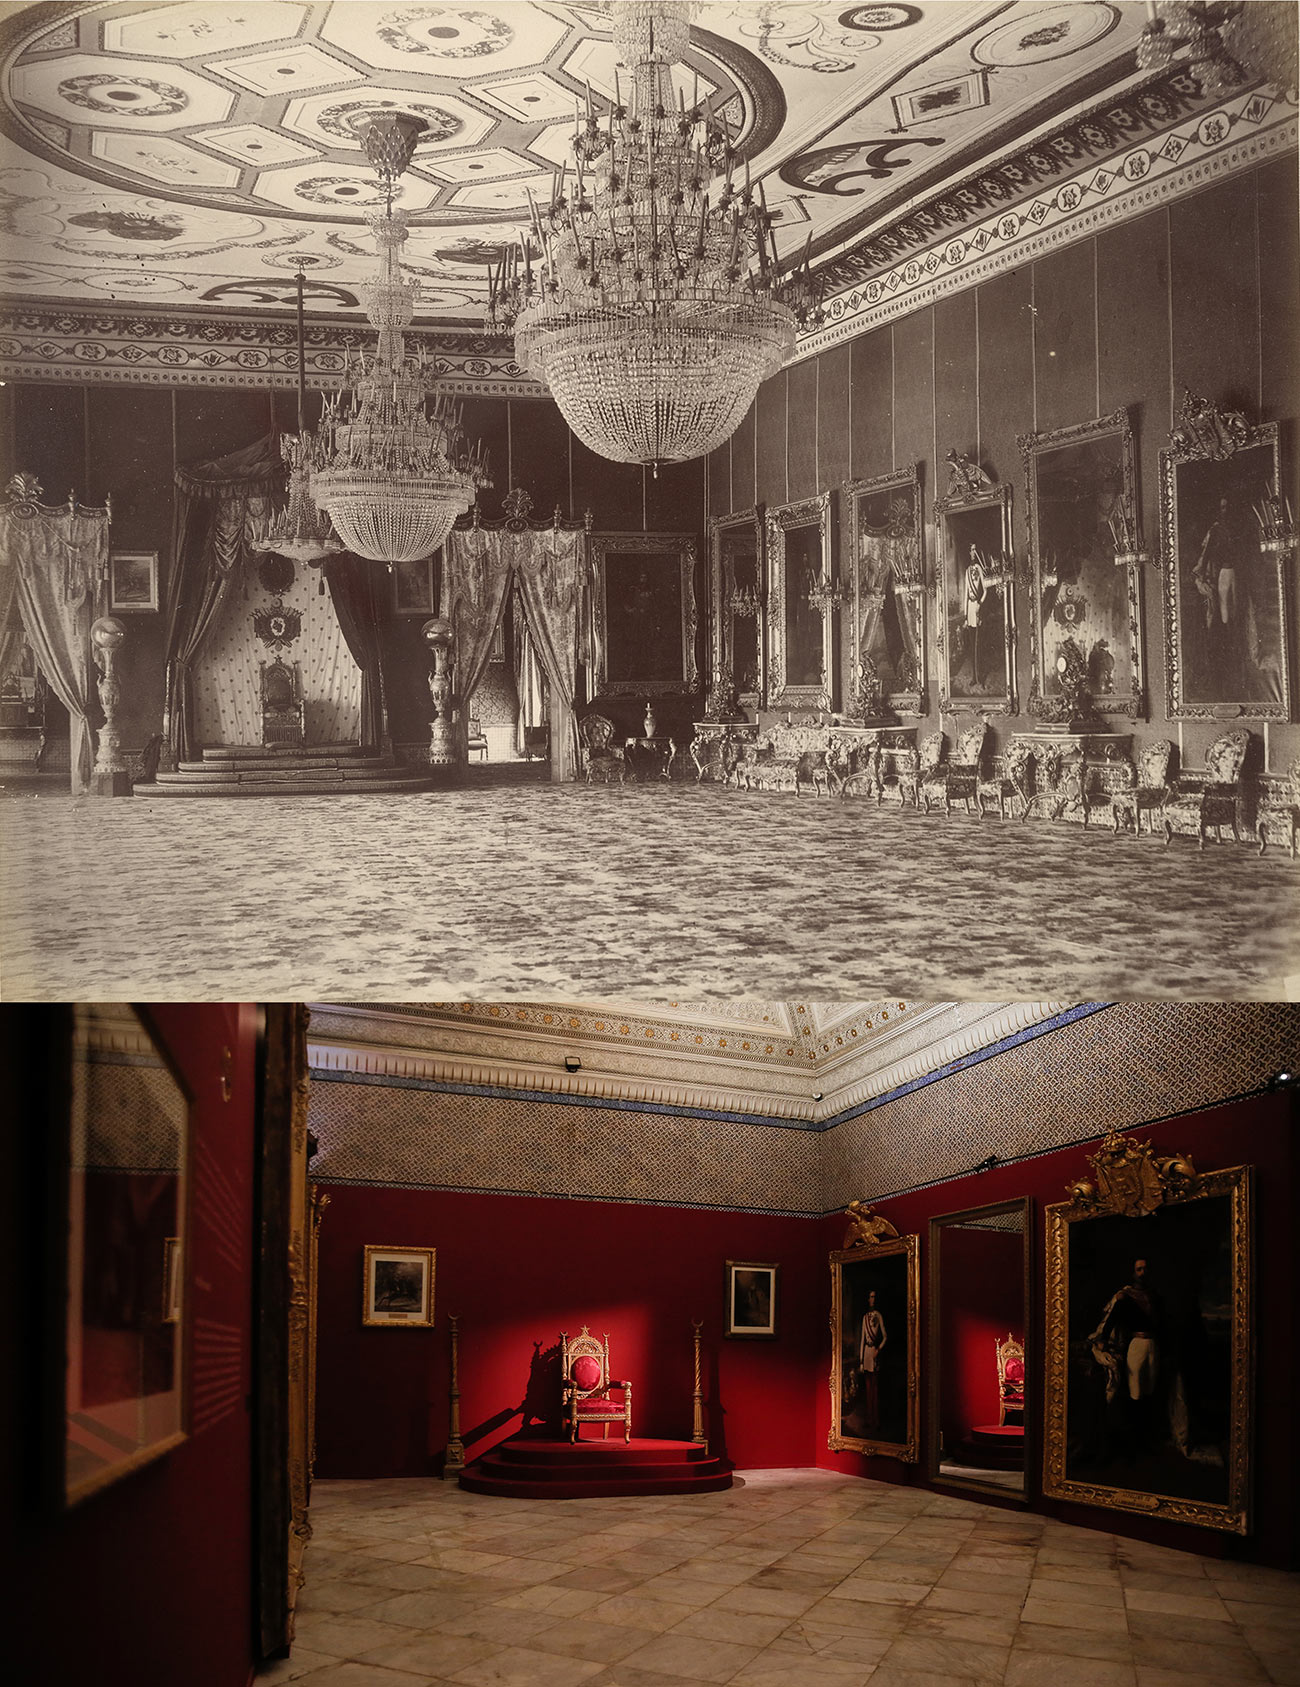 A sepia-toned historic photograph and a recent color photograph showing the interior of an elaborate ballroom with chandeliers